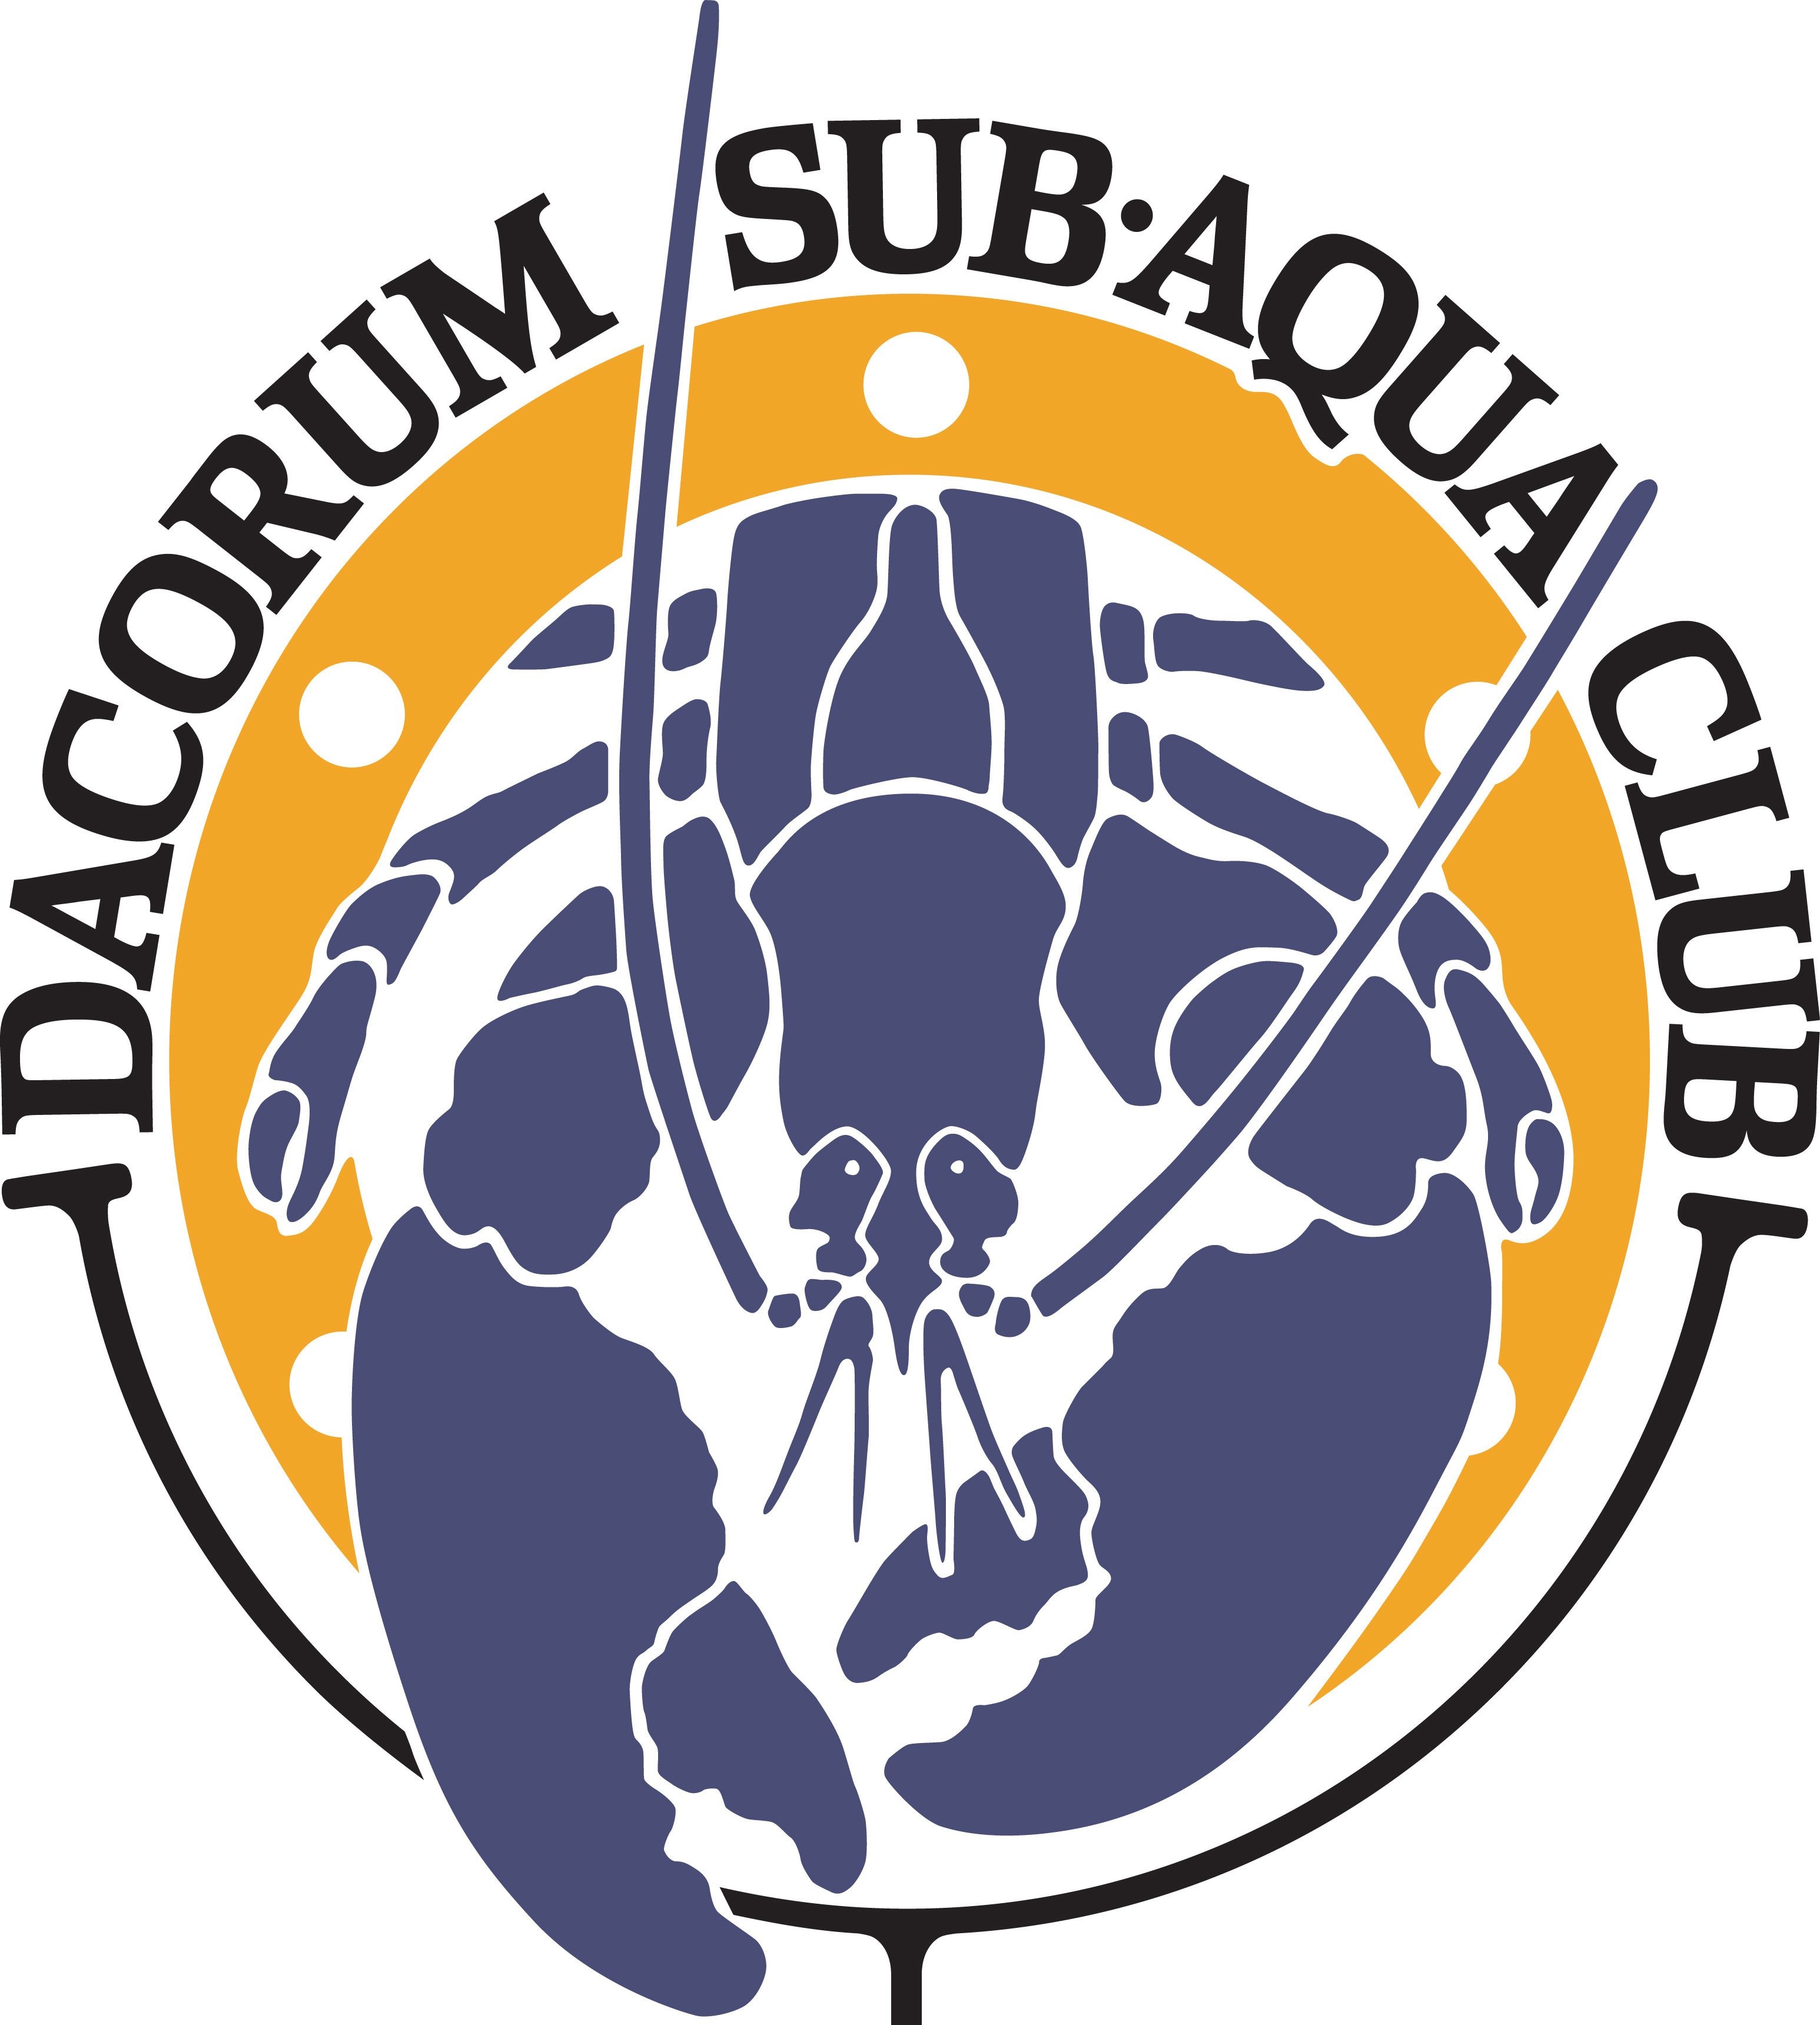 Dacorum Sub-Aqua Club Shop